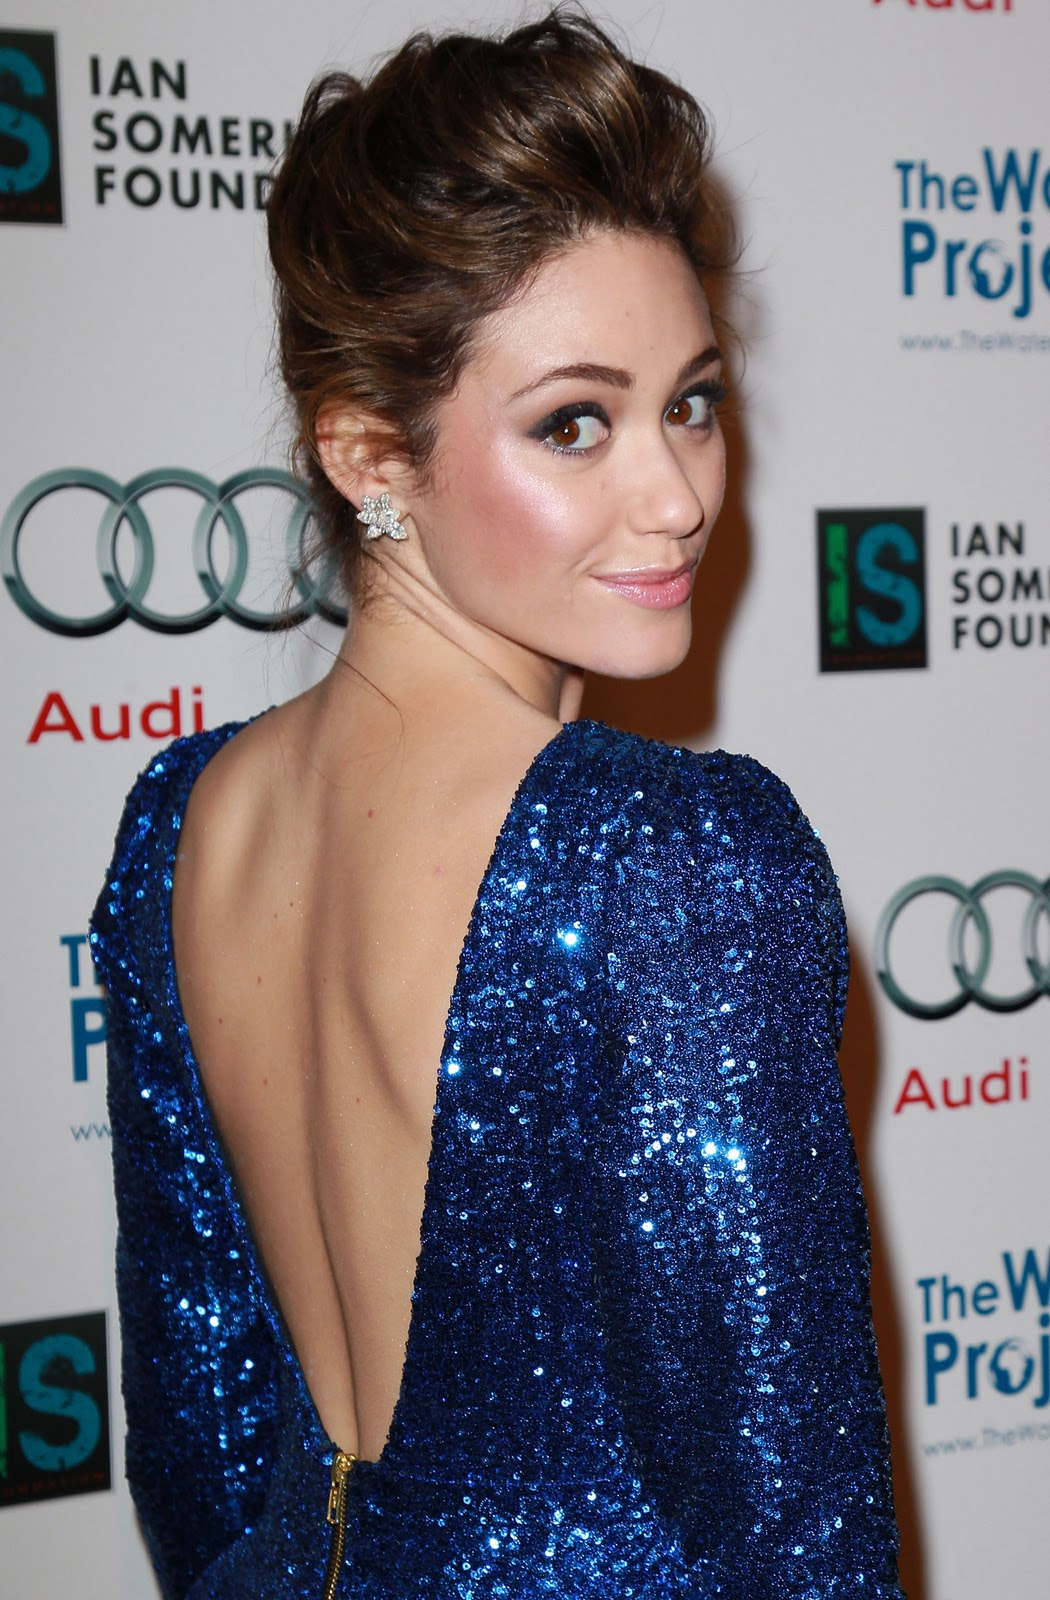 http://3.bp.blogspot.com/-obhtjP-7Otk/TuVEnxvrNCI/AAAAAAAAnbE/zCQWCwbz0wE/s1600/Emmy-Rossum-at-The-Ripple-Effect-Charity-Event-in-Los-Angeles-3.jpg